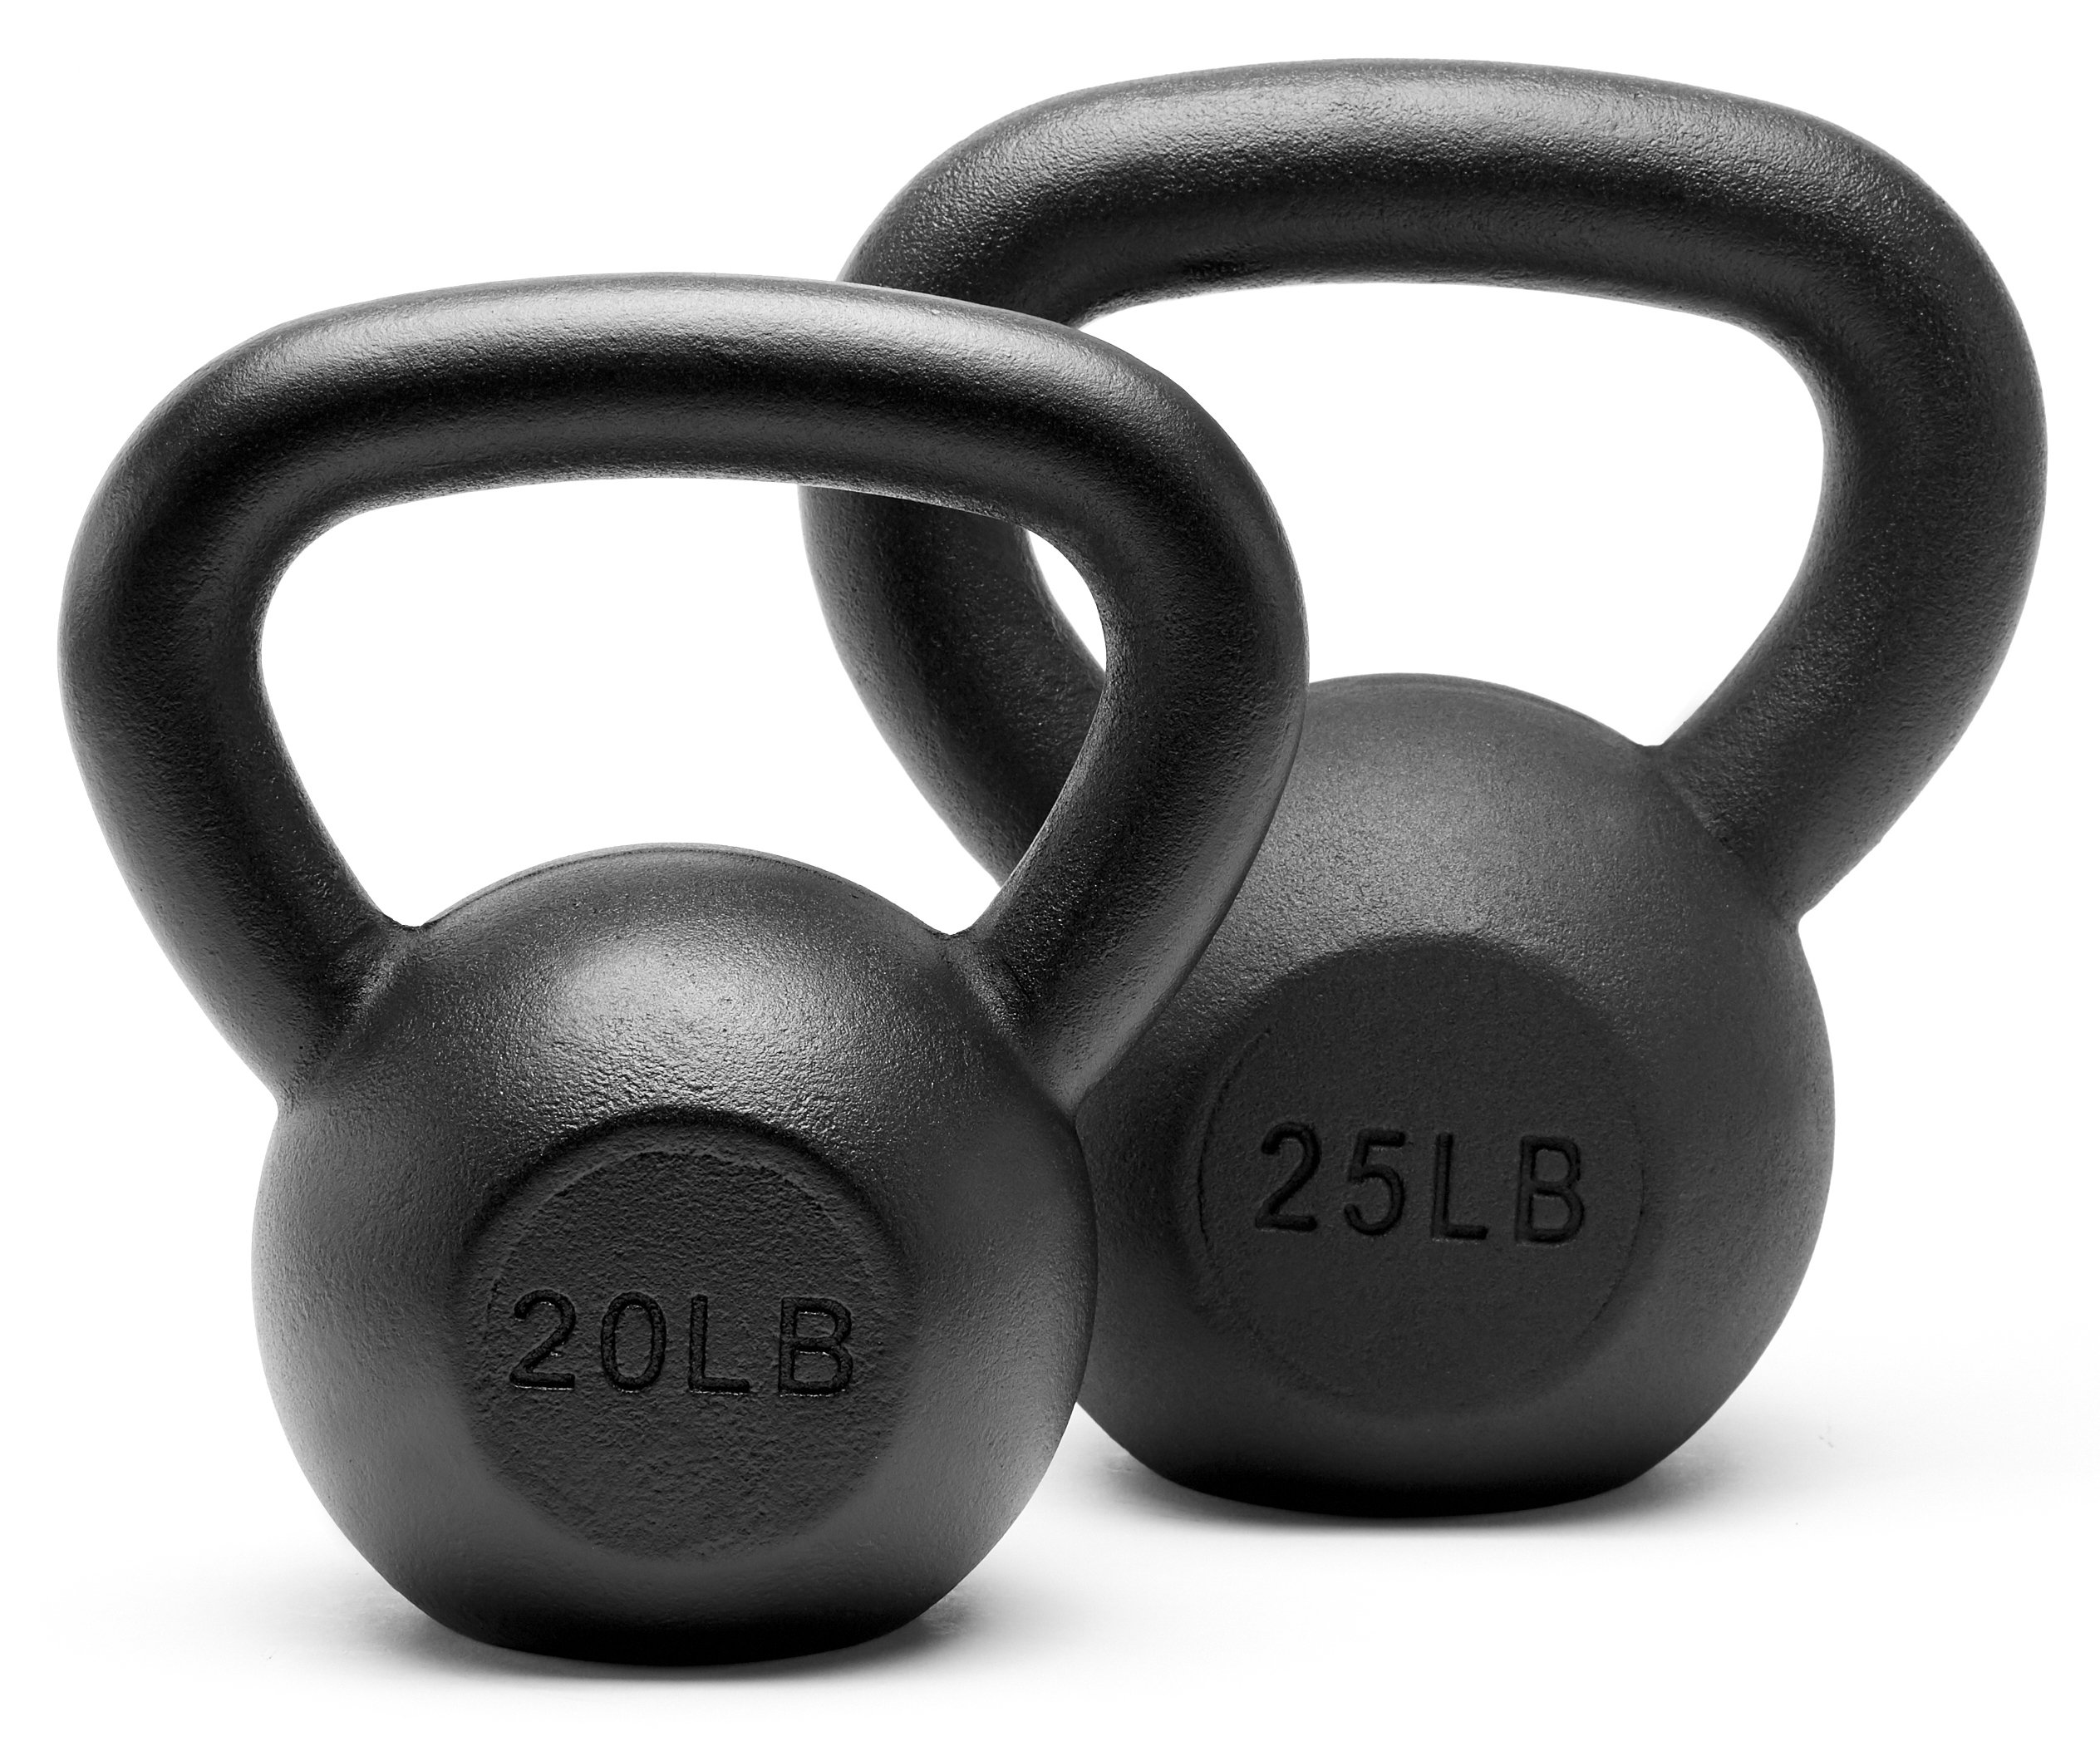 Unipack Powder Coated Solid Cast Iron Kettlebell Weights Set- (20+25 lbs)